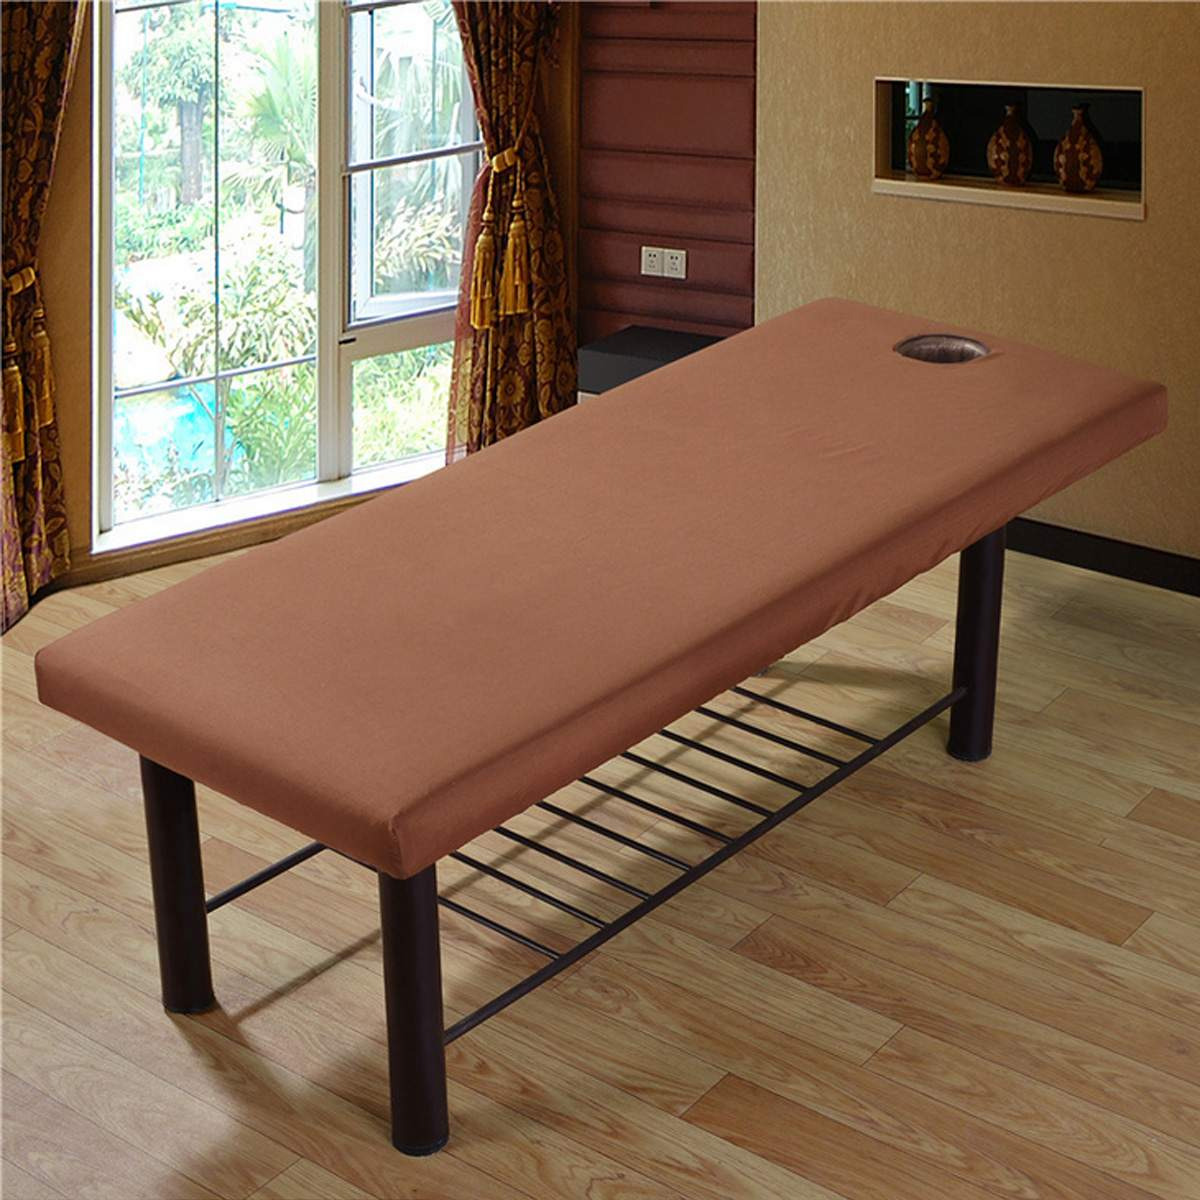 Soft Polyester Massage Bed Cover Beauty Salon Massage Sheet Body SPA Treatment Relaxation Bedsheet With Face Breath Hole 8